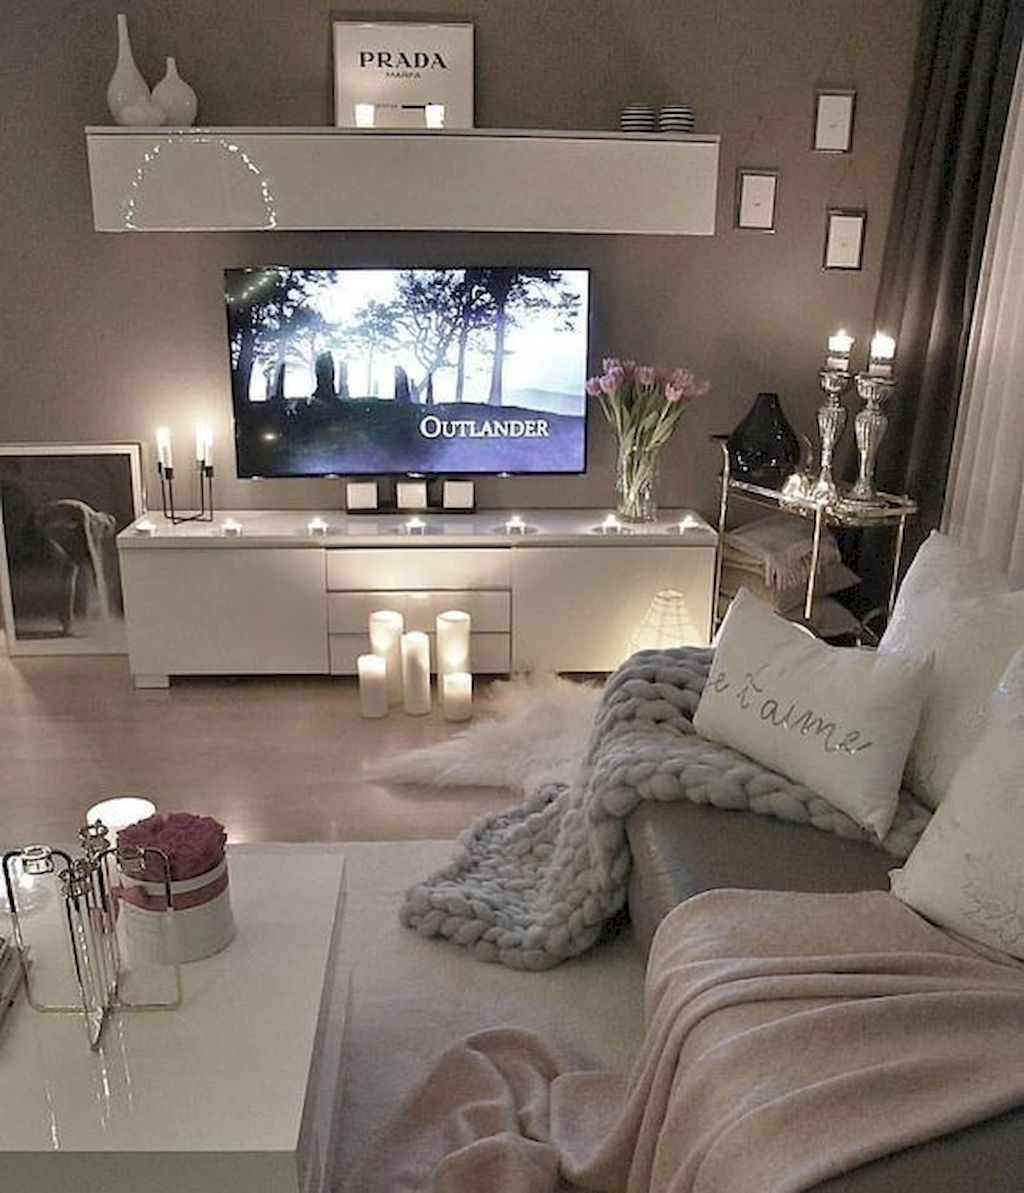 50 Affordable Apartment Living Room Design Ideas On A Budget Apartment Living Room Design Primark Home Small Apartment Living Room